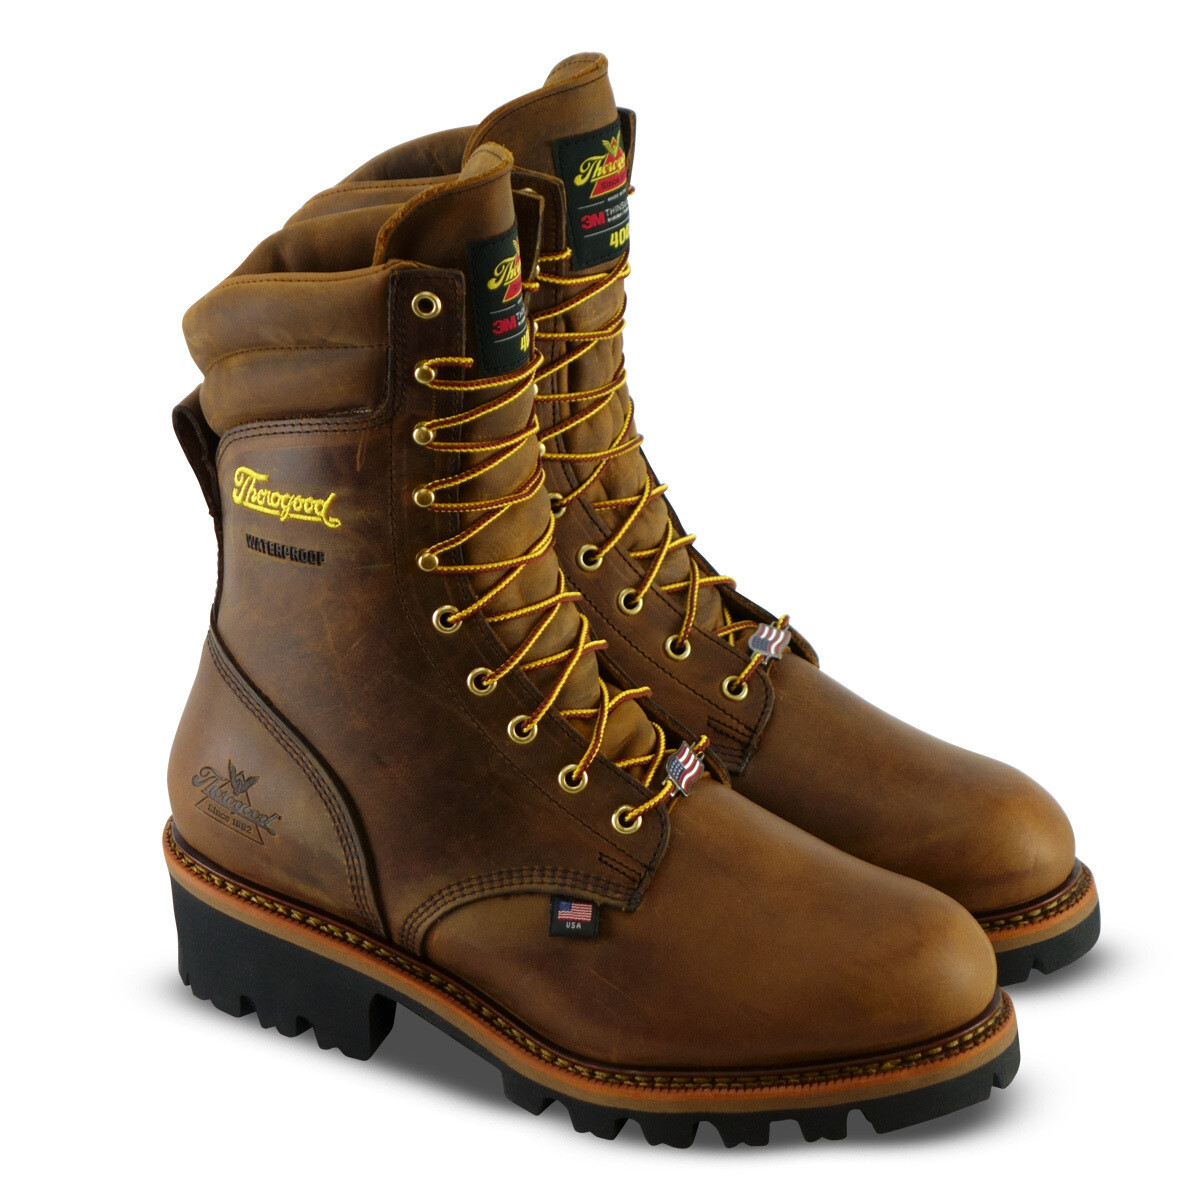 804-3554 Thorogood USA LOGGER SERIES 9″ BROWN TRAIL CRAZYHORSE INS WP Steel Toe - ONLINE ONLY